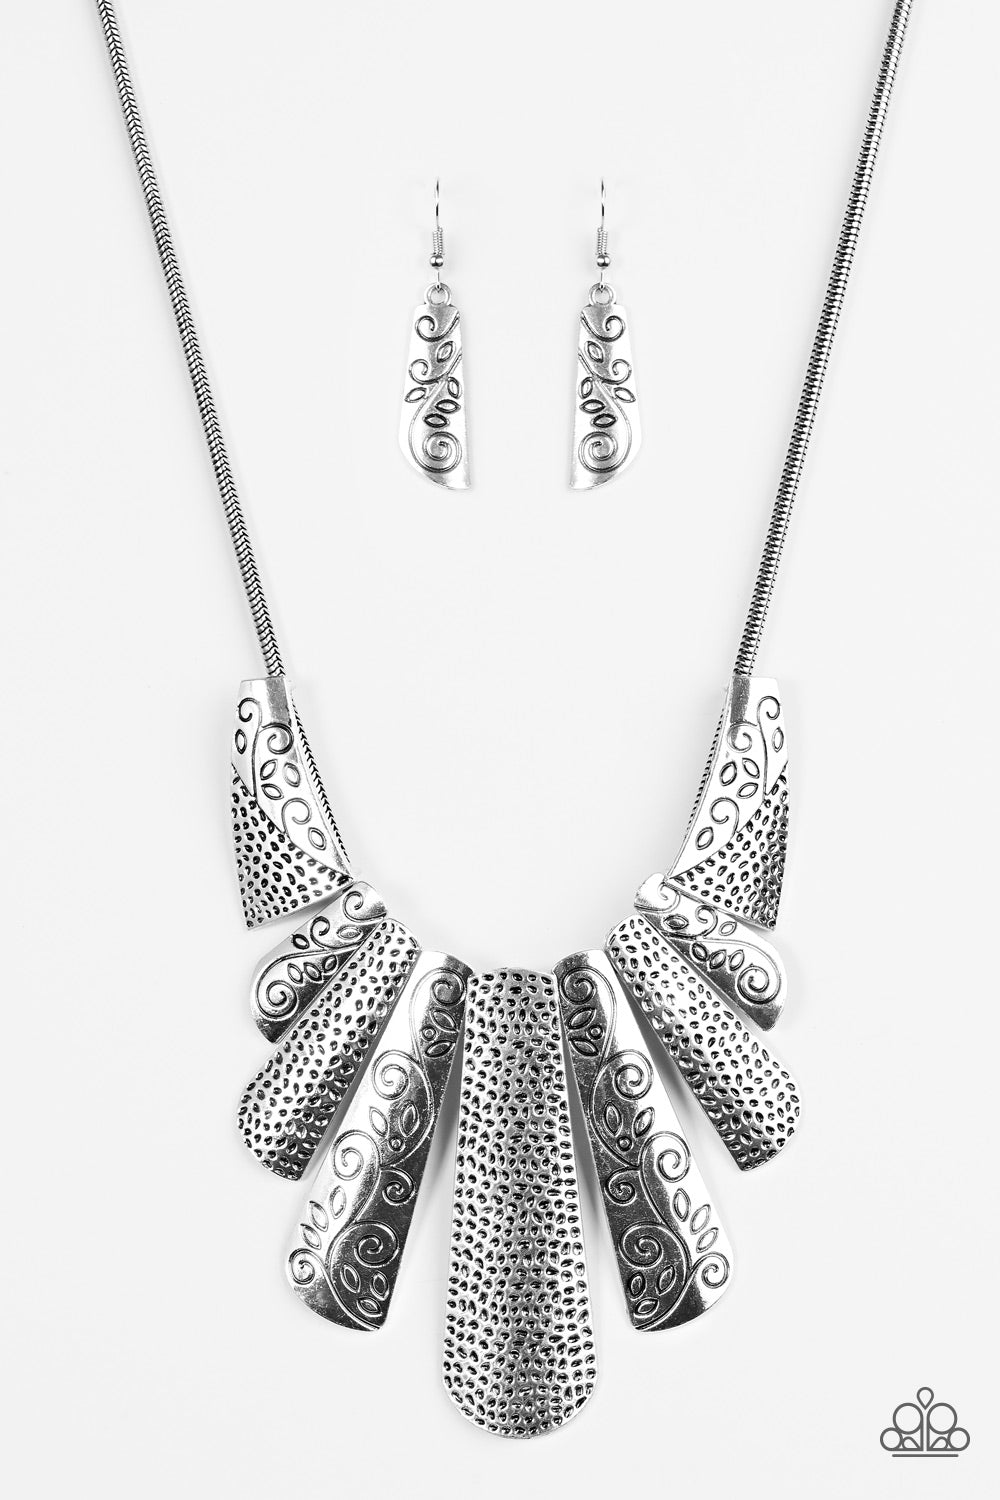 Paparazzi Accessories - Untamed - Silver Necklace Set - JMJ Jewelry Collection